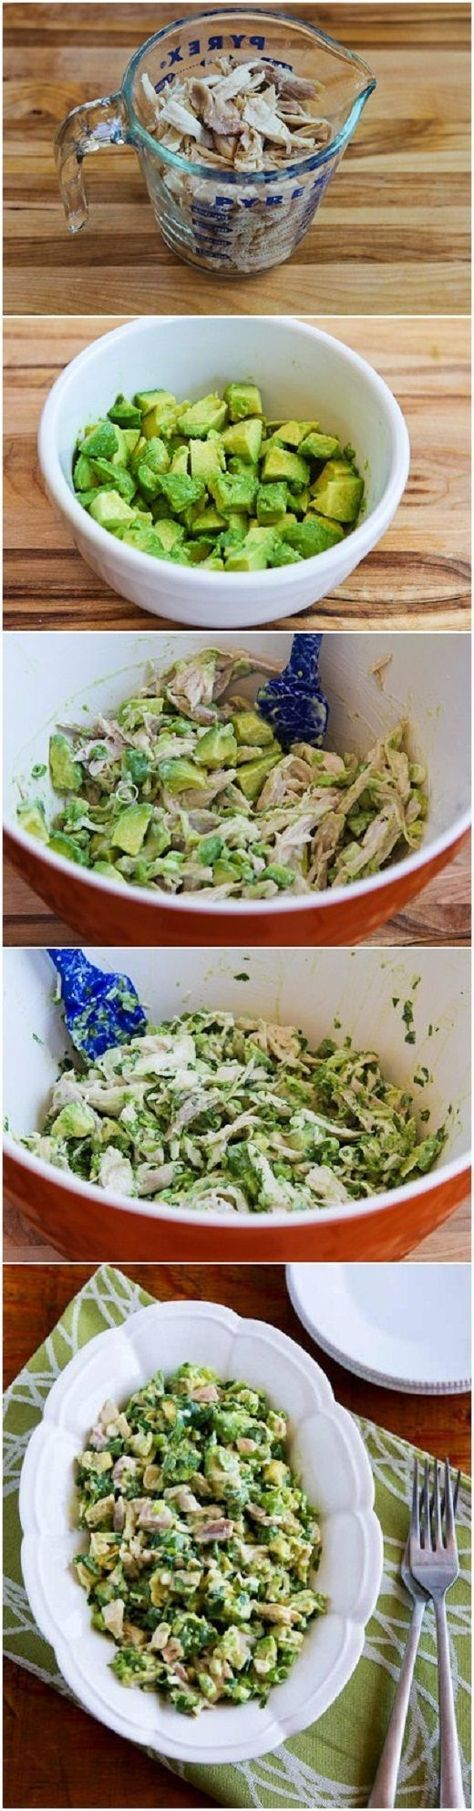 Chicken and Avocado Salad with Lime and Cilantro Recipe. Sub Greek yogurt instead of mayo and this works for the 21 Day Fix!